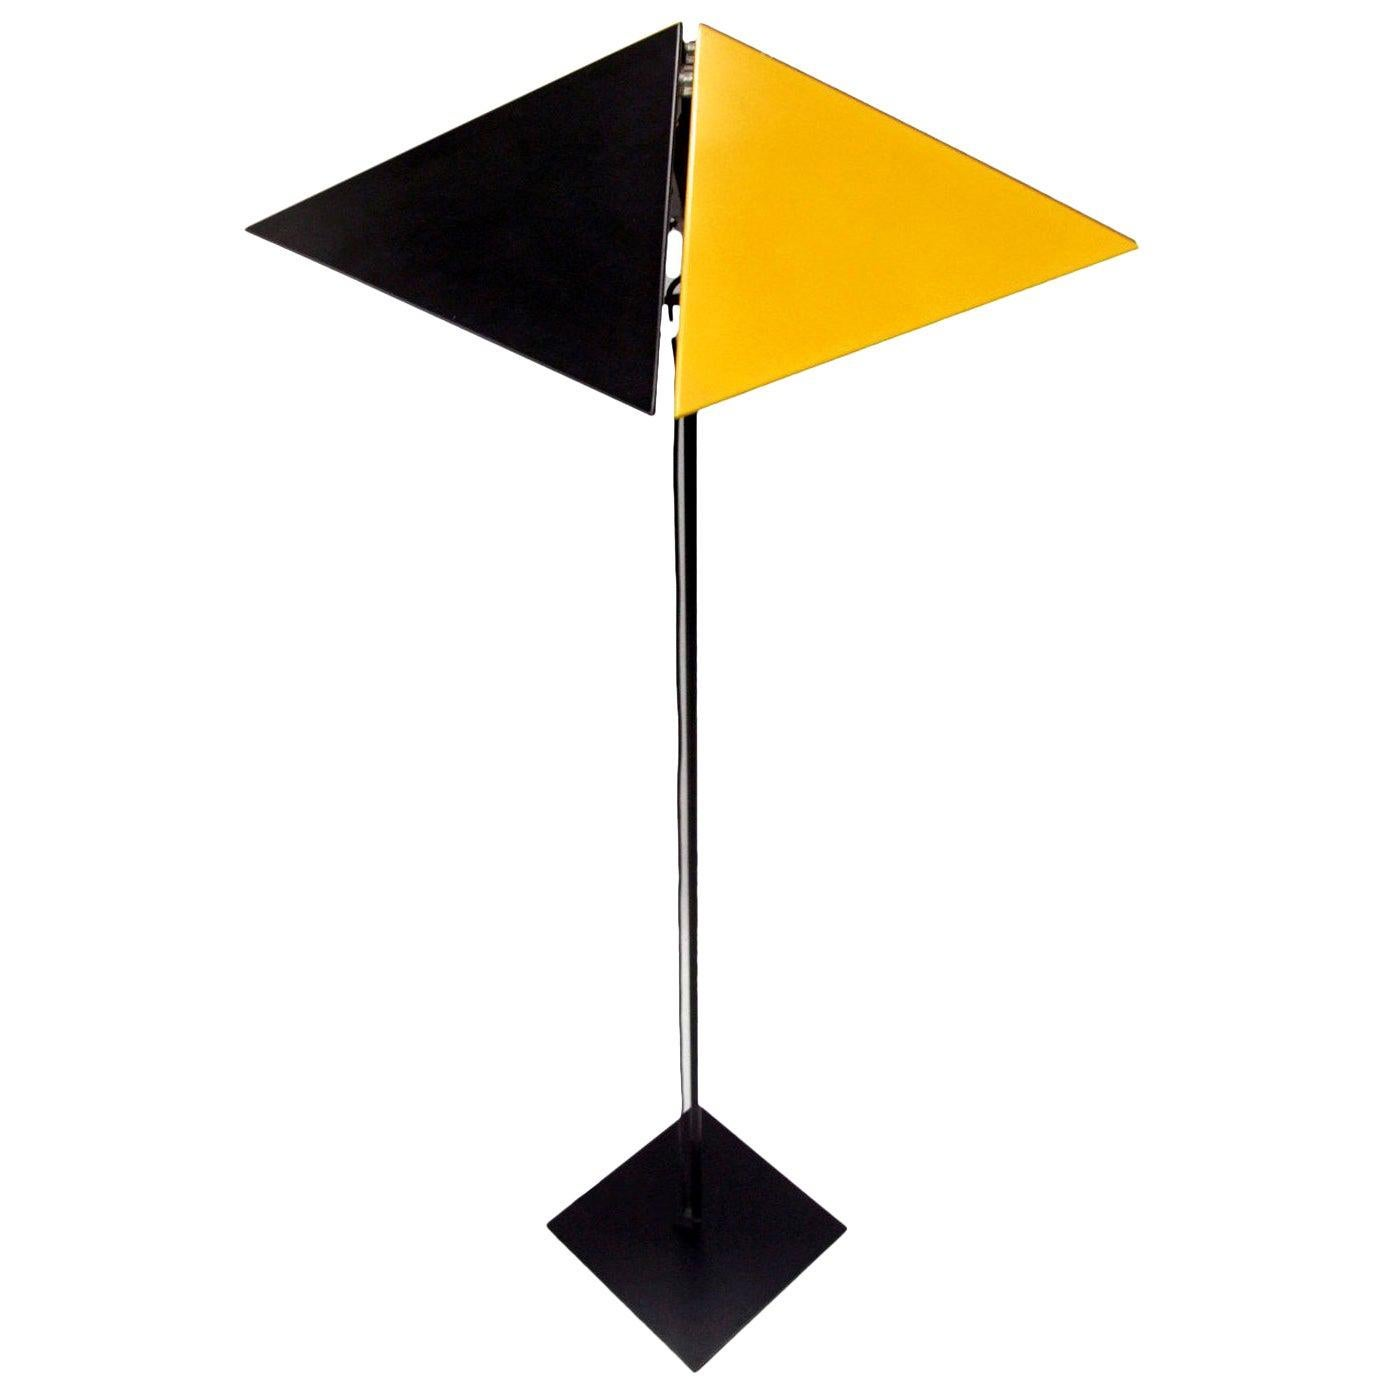 1980s Metal Postmodernist Floor Lamp by OMK Yellow and Black Memphis Style